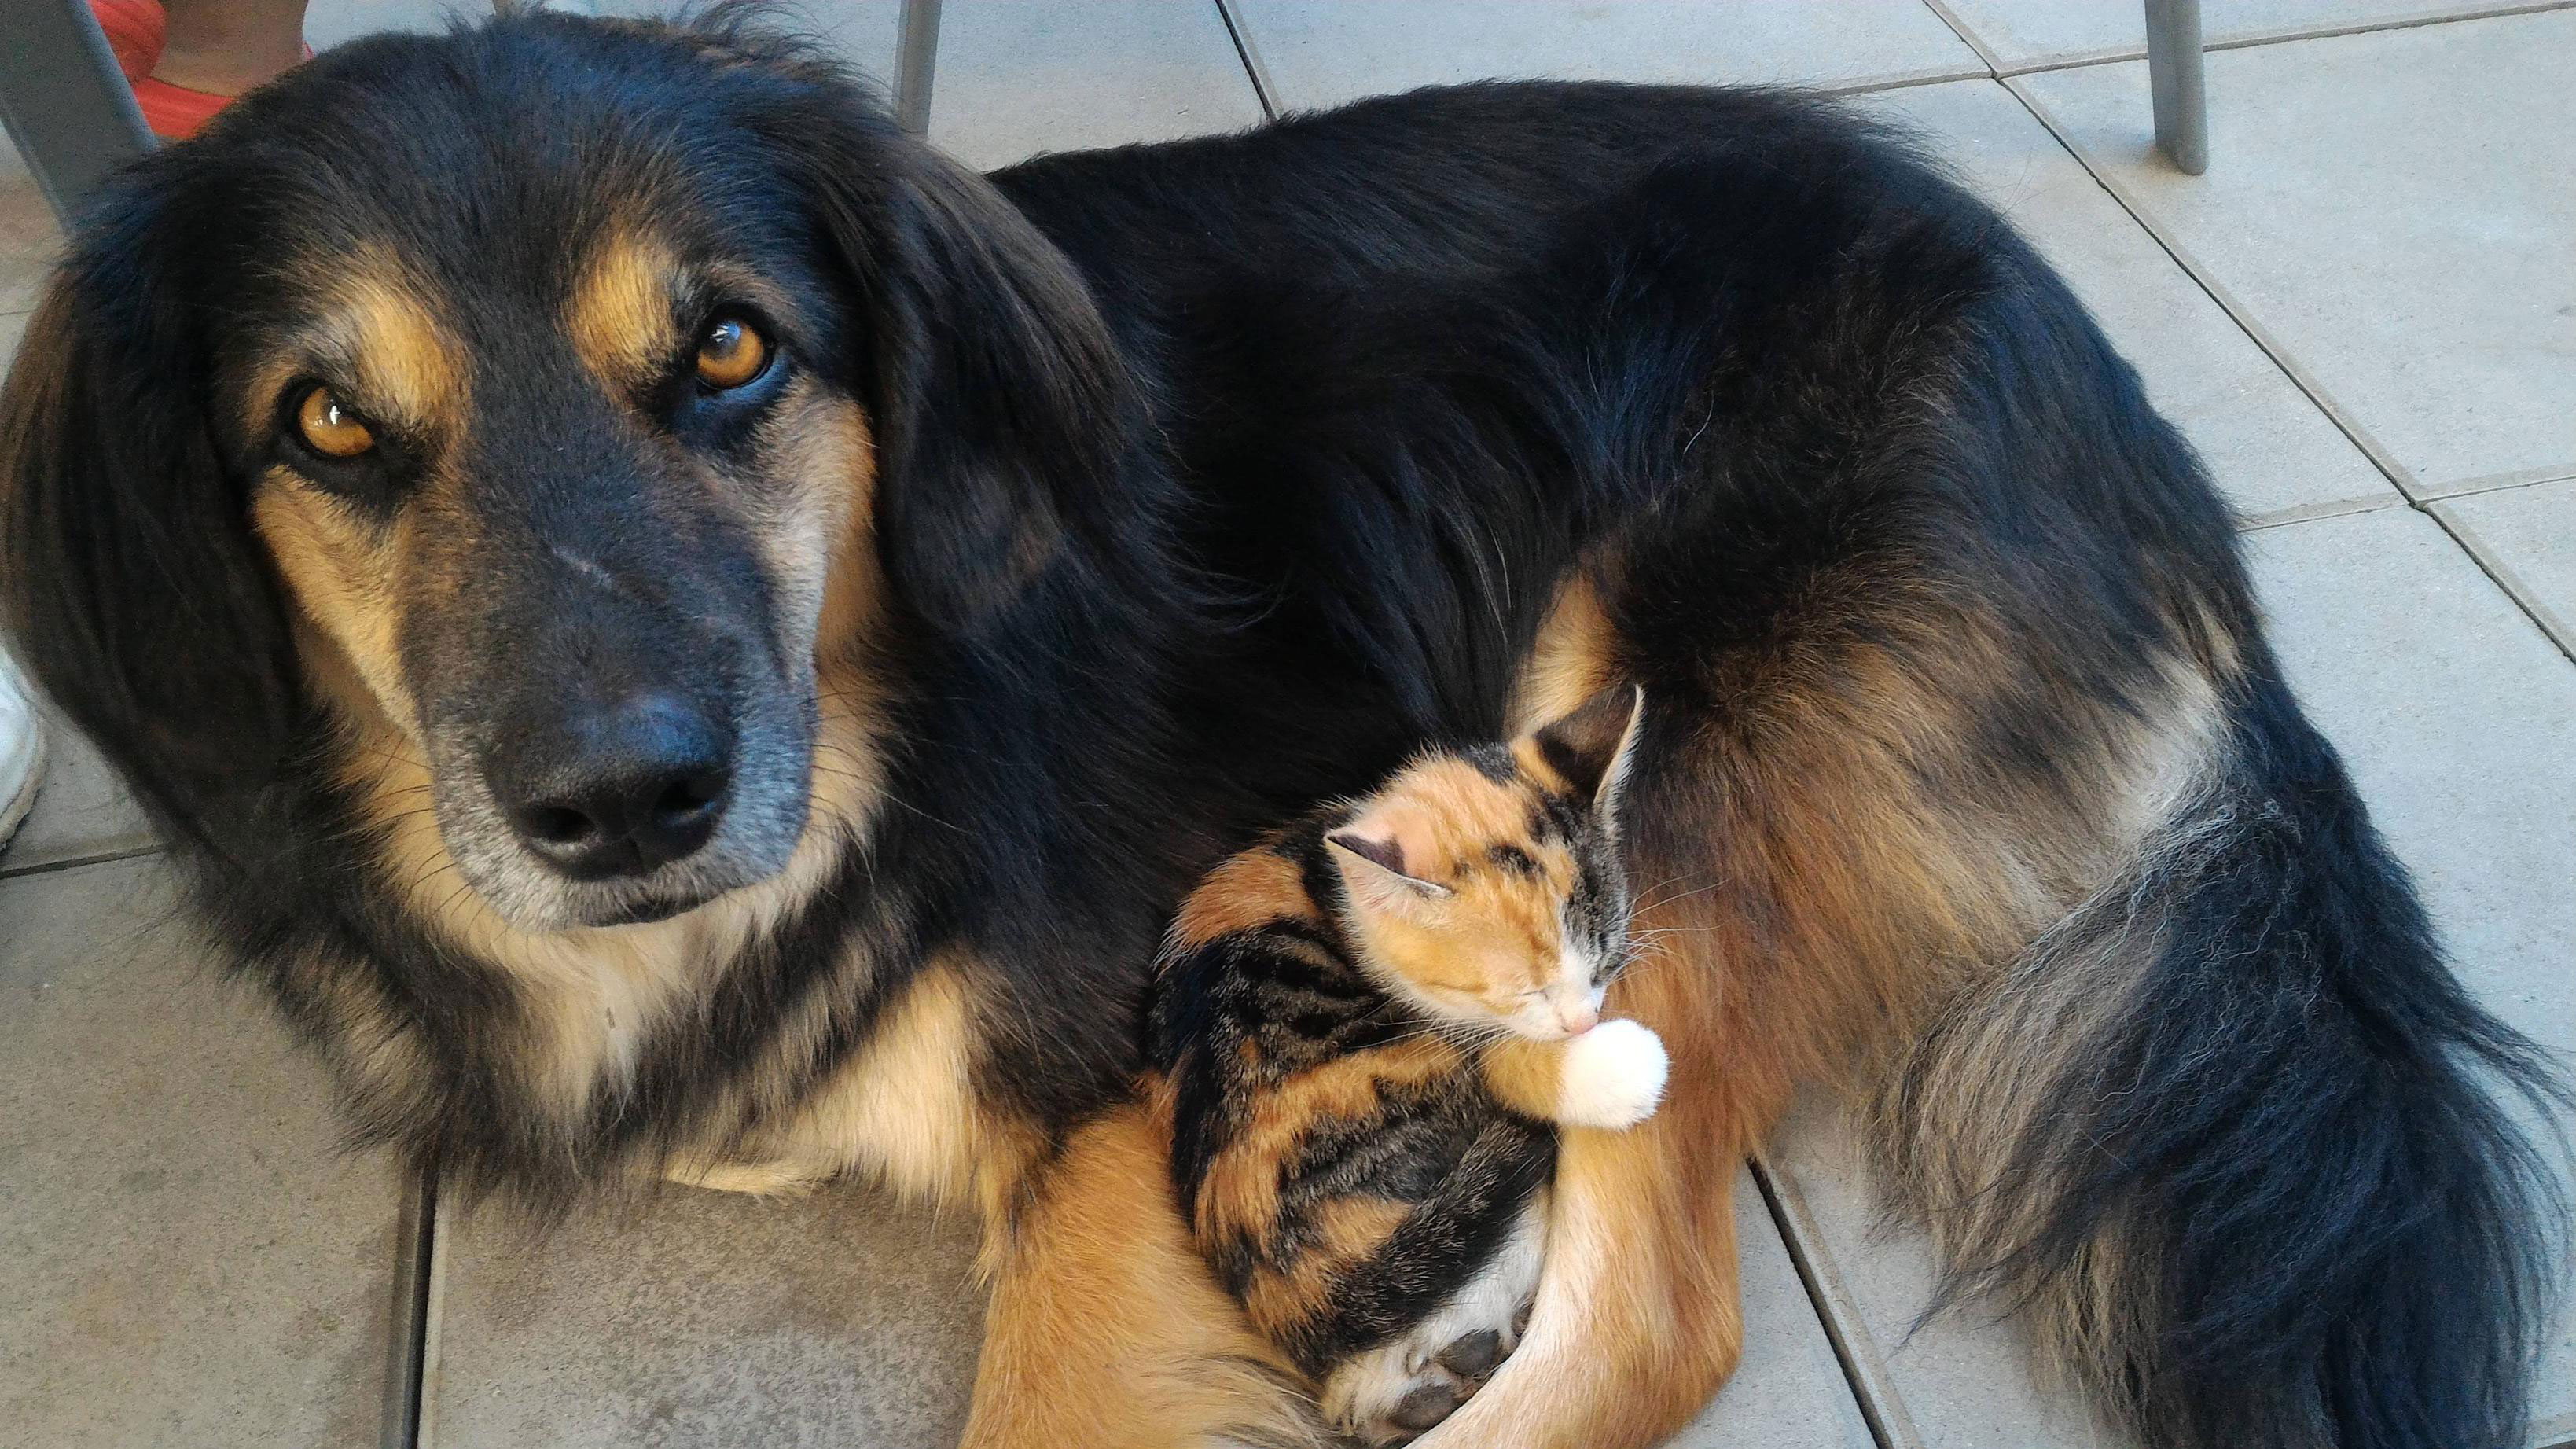 We were worried the dog and kitten wouldn't get along